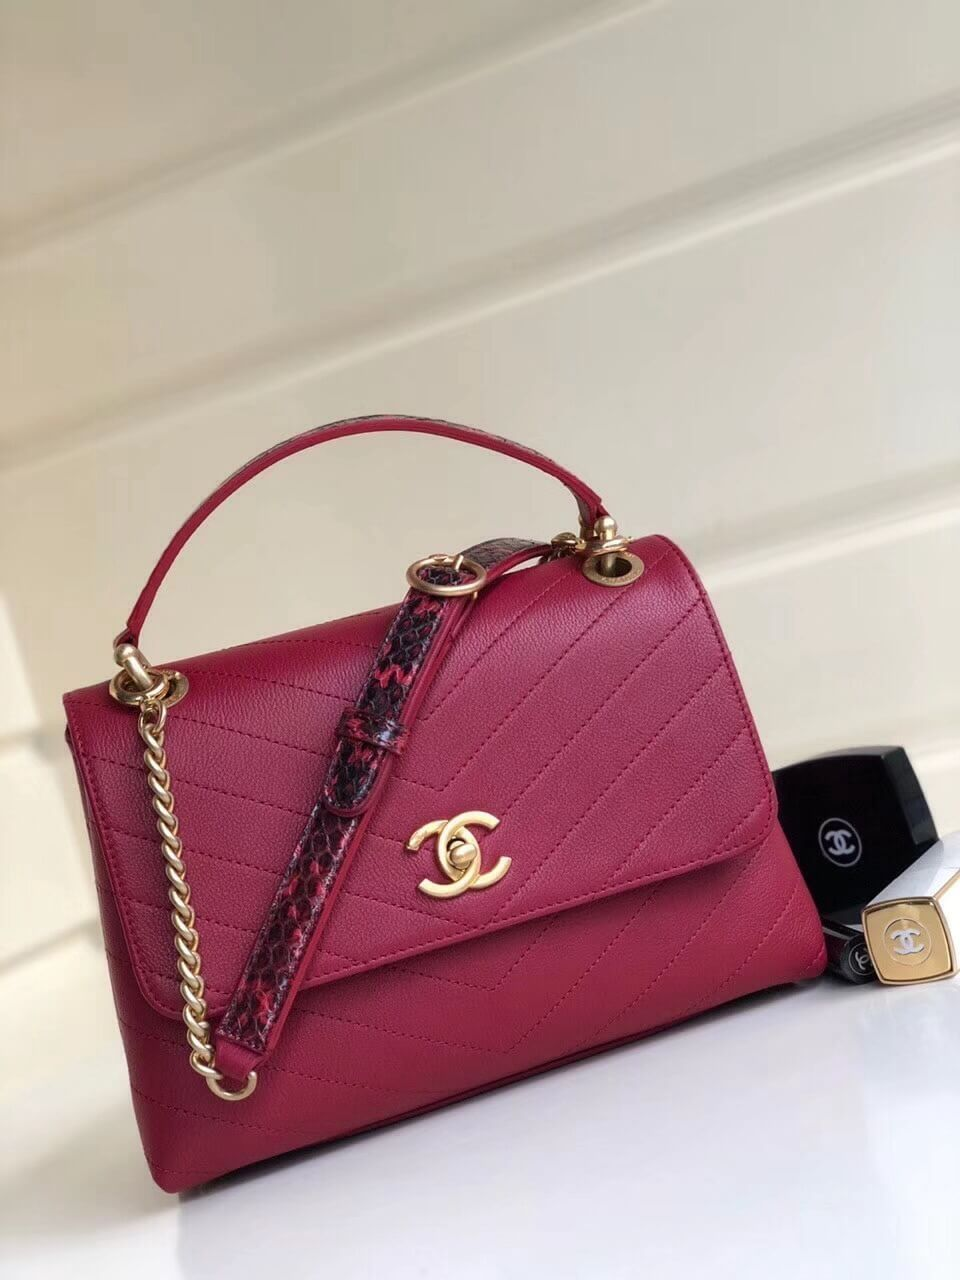 98722a726753 Chanel Bags on Sale  Chanel Small Top Handle Bag 100% Authentic 80% Off